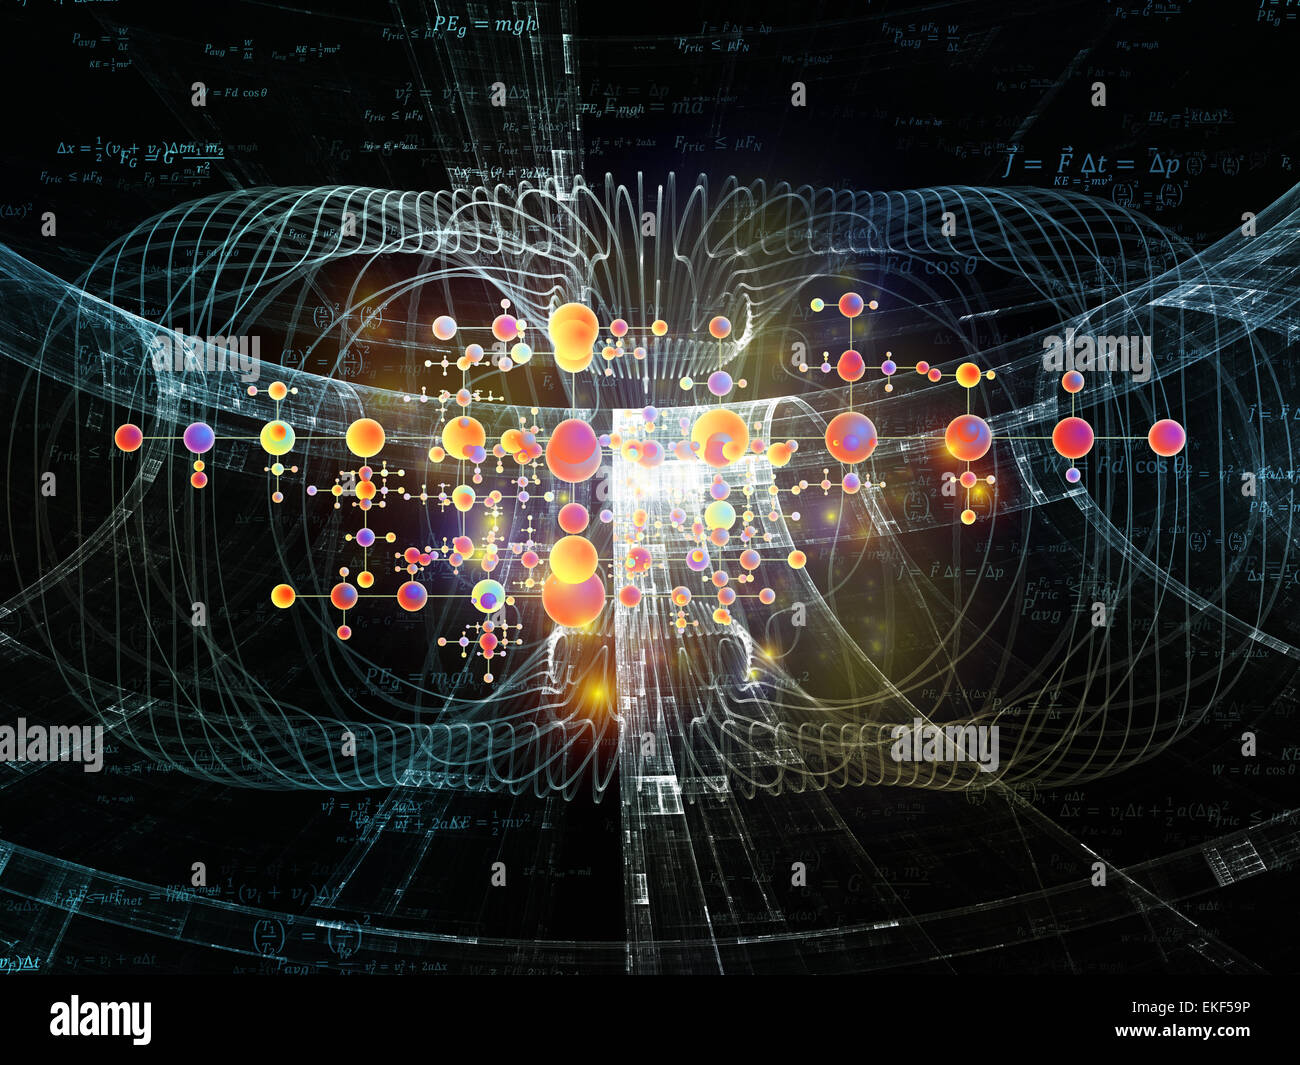 Advance of Physics - Stock Image